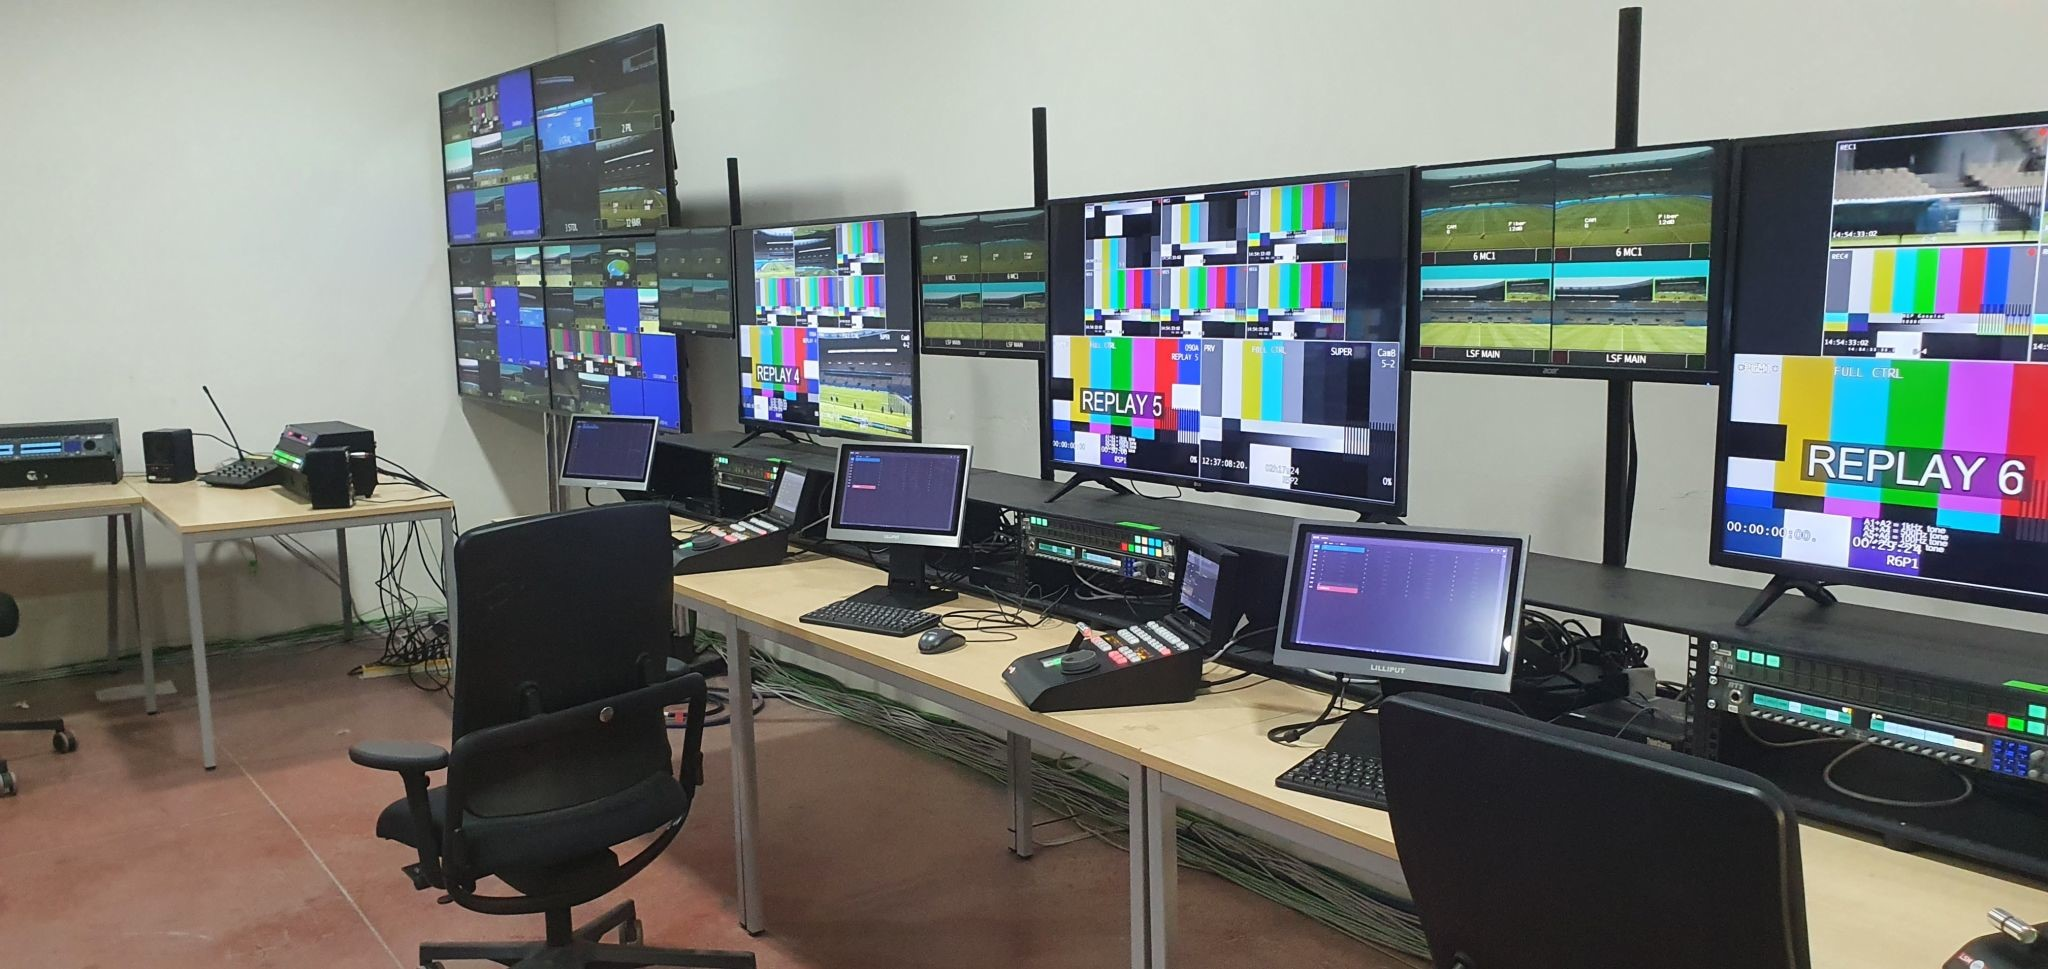 View of replay area at the International Broadcast Center, situated near Amsterdam in the Netherlands.